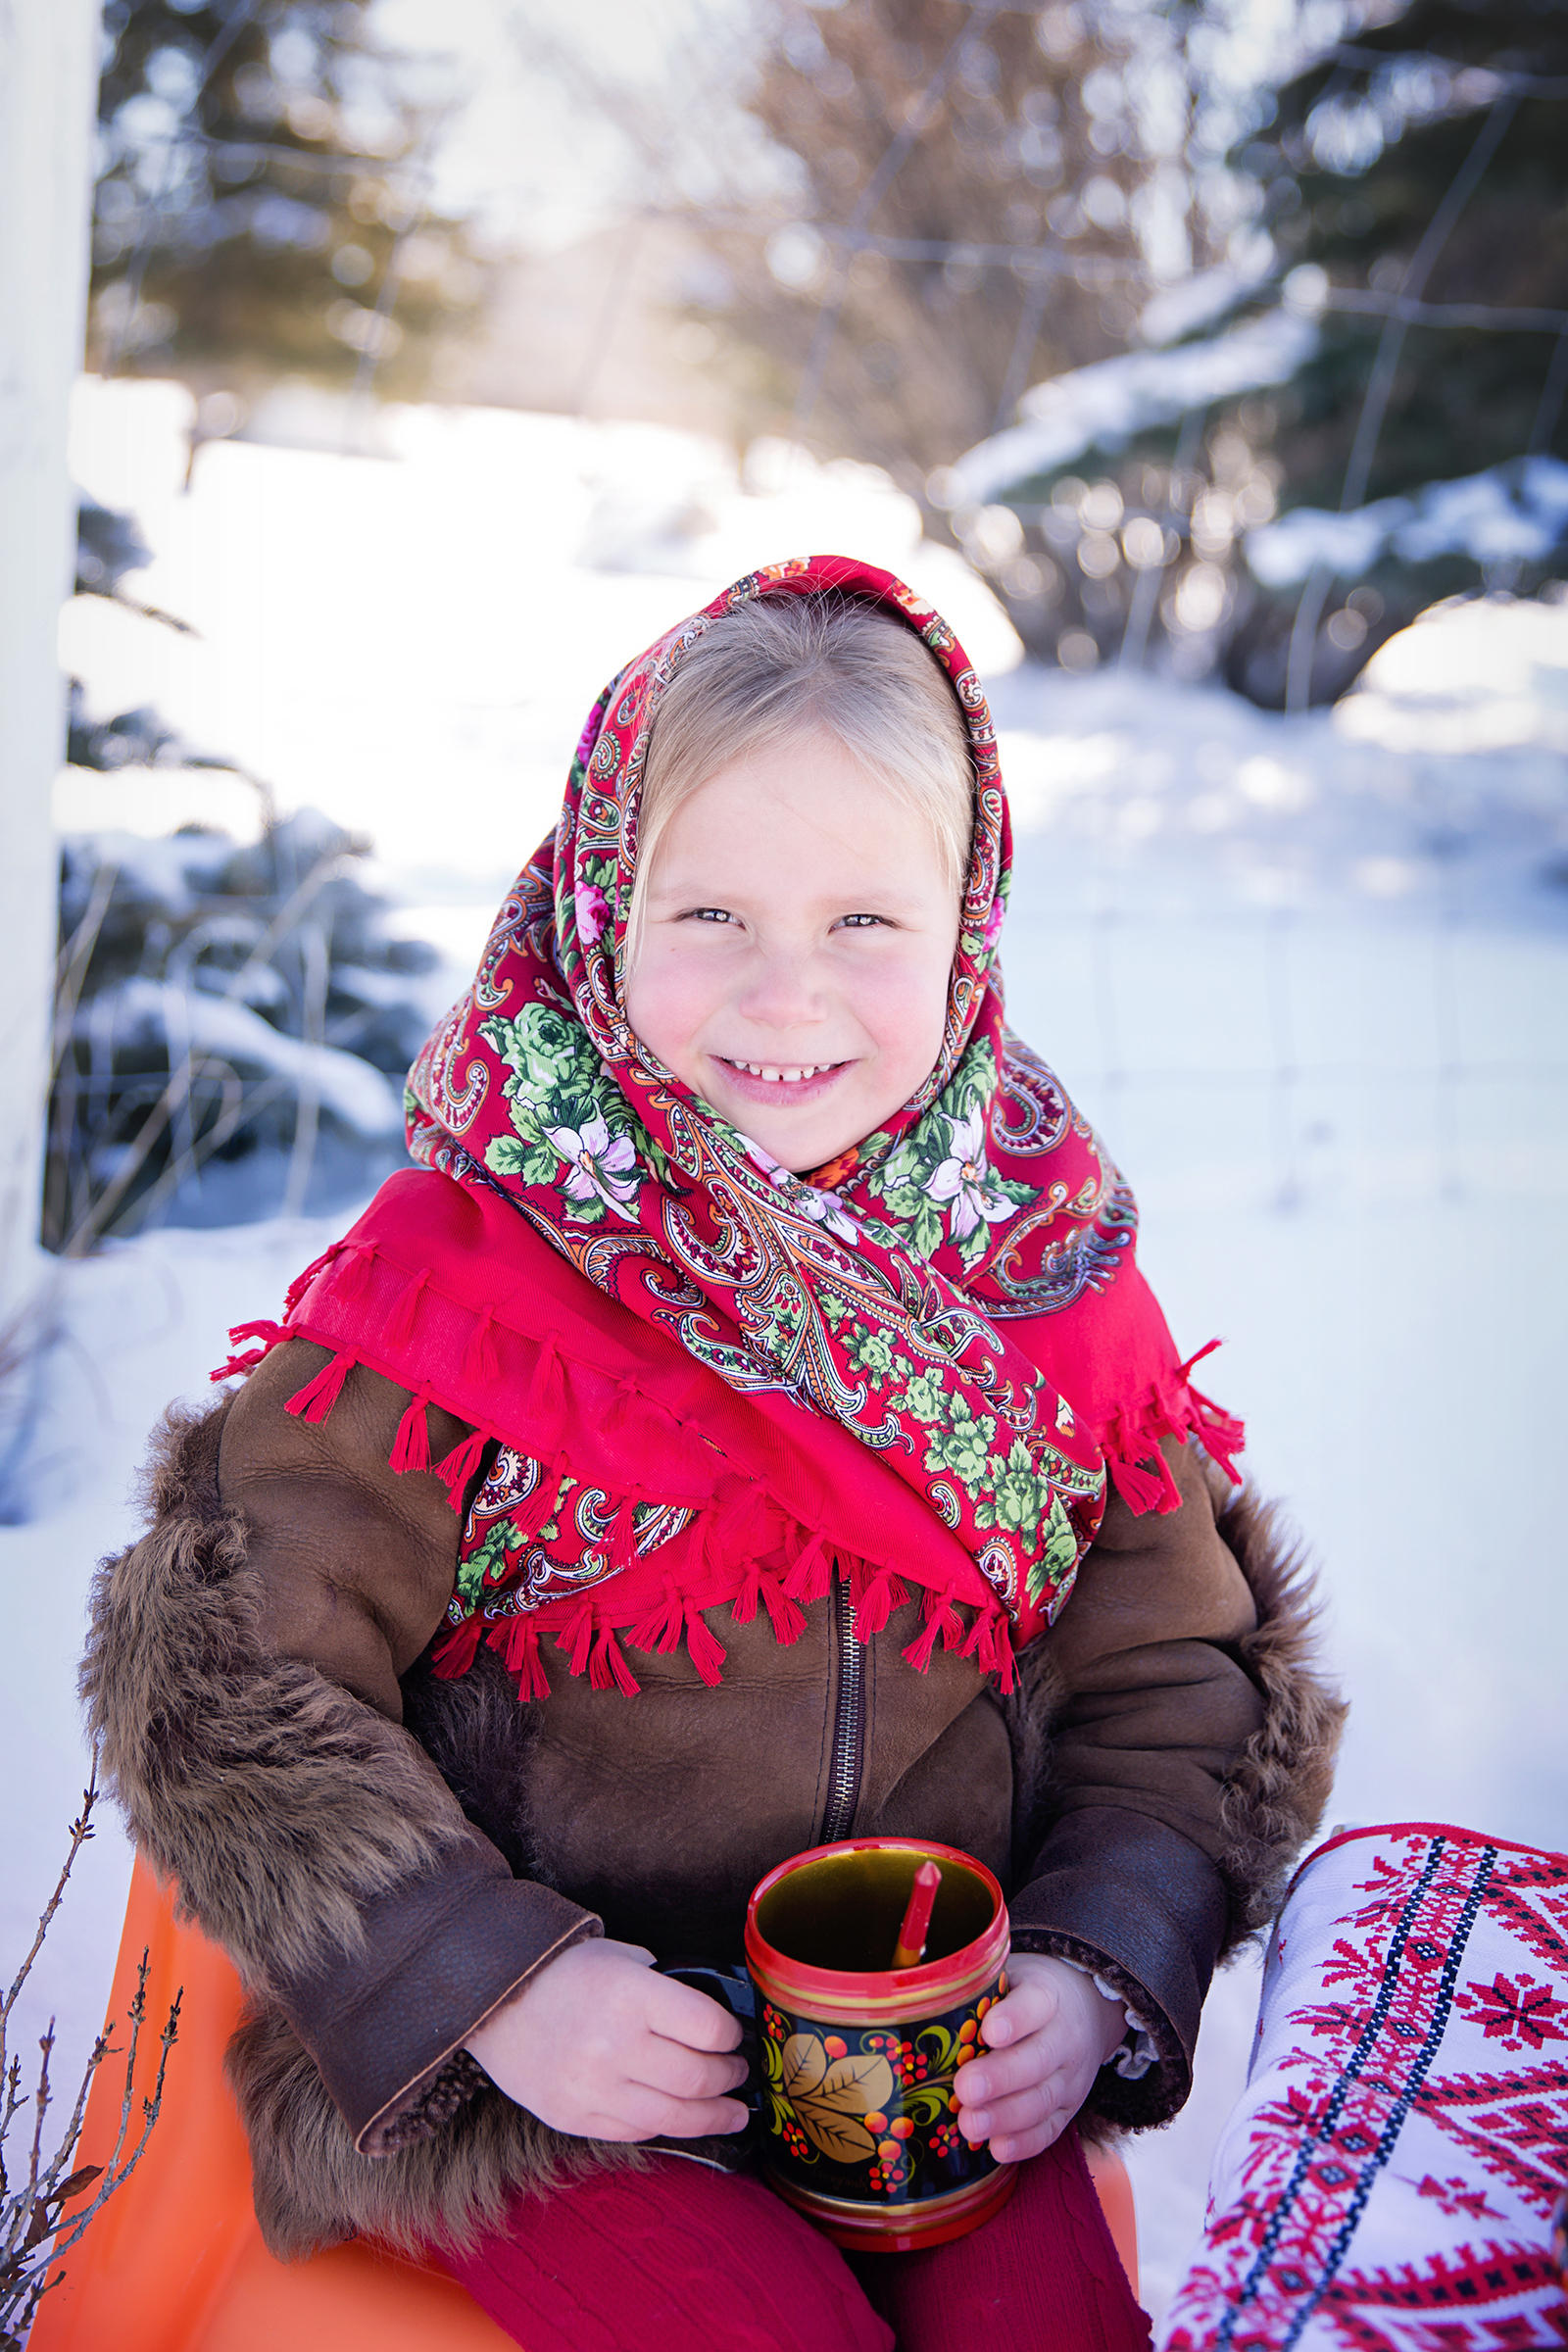 Russian girl. Dressed in Russian traditional clothes and holding a Russian dish. Calgary Russian Photographer